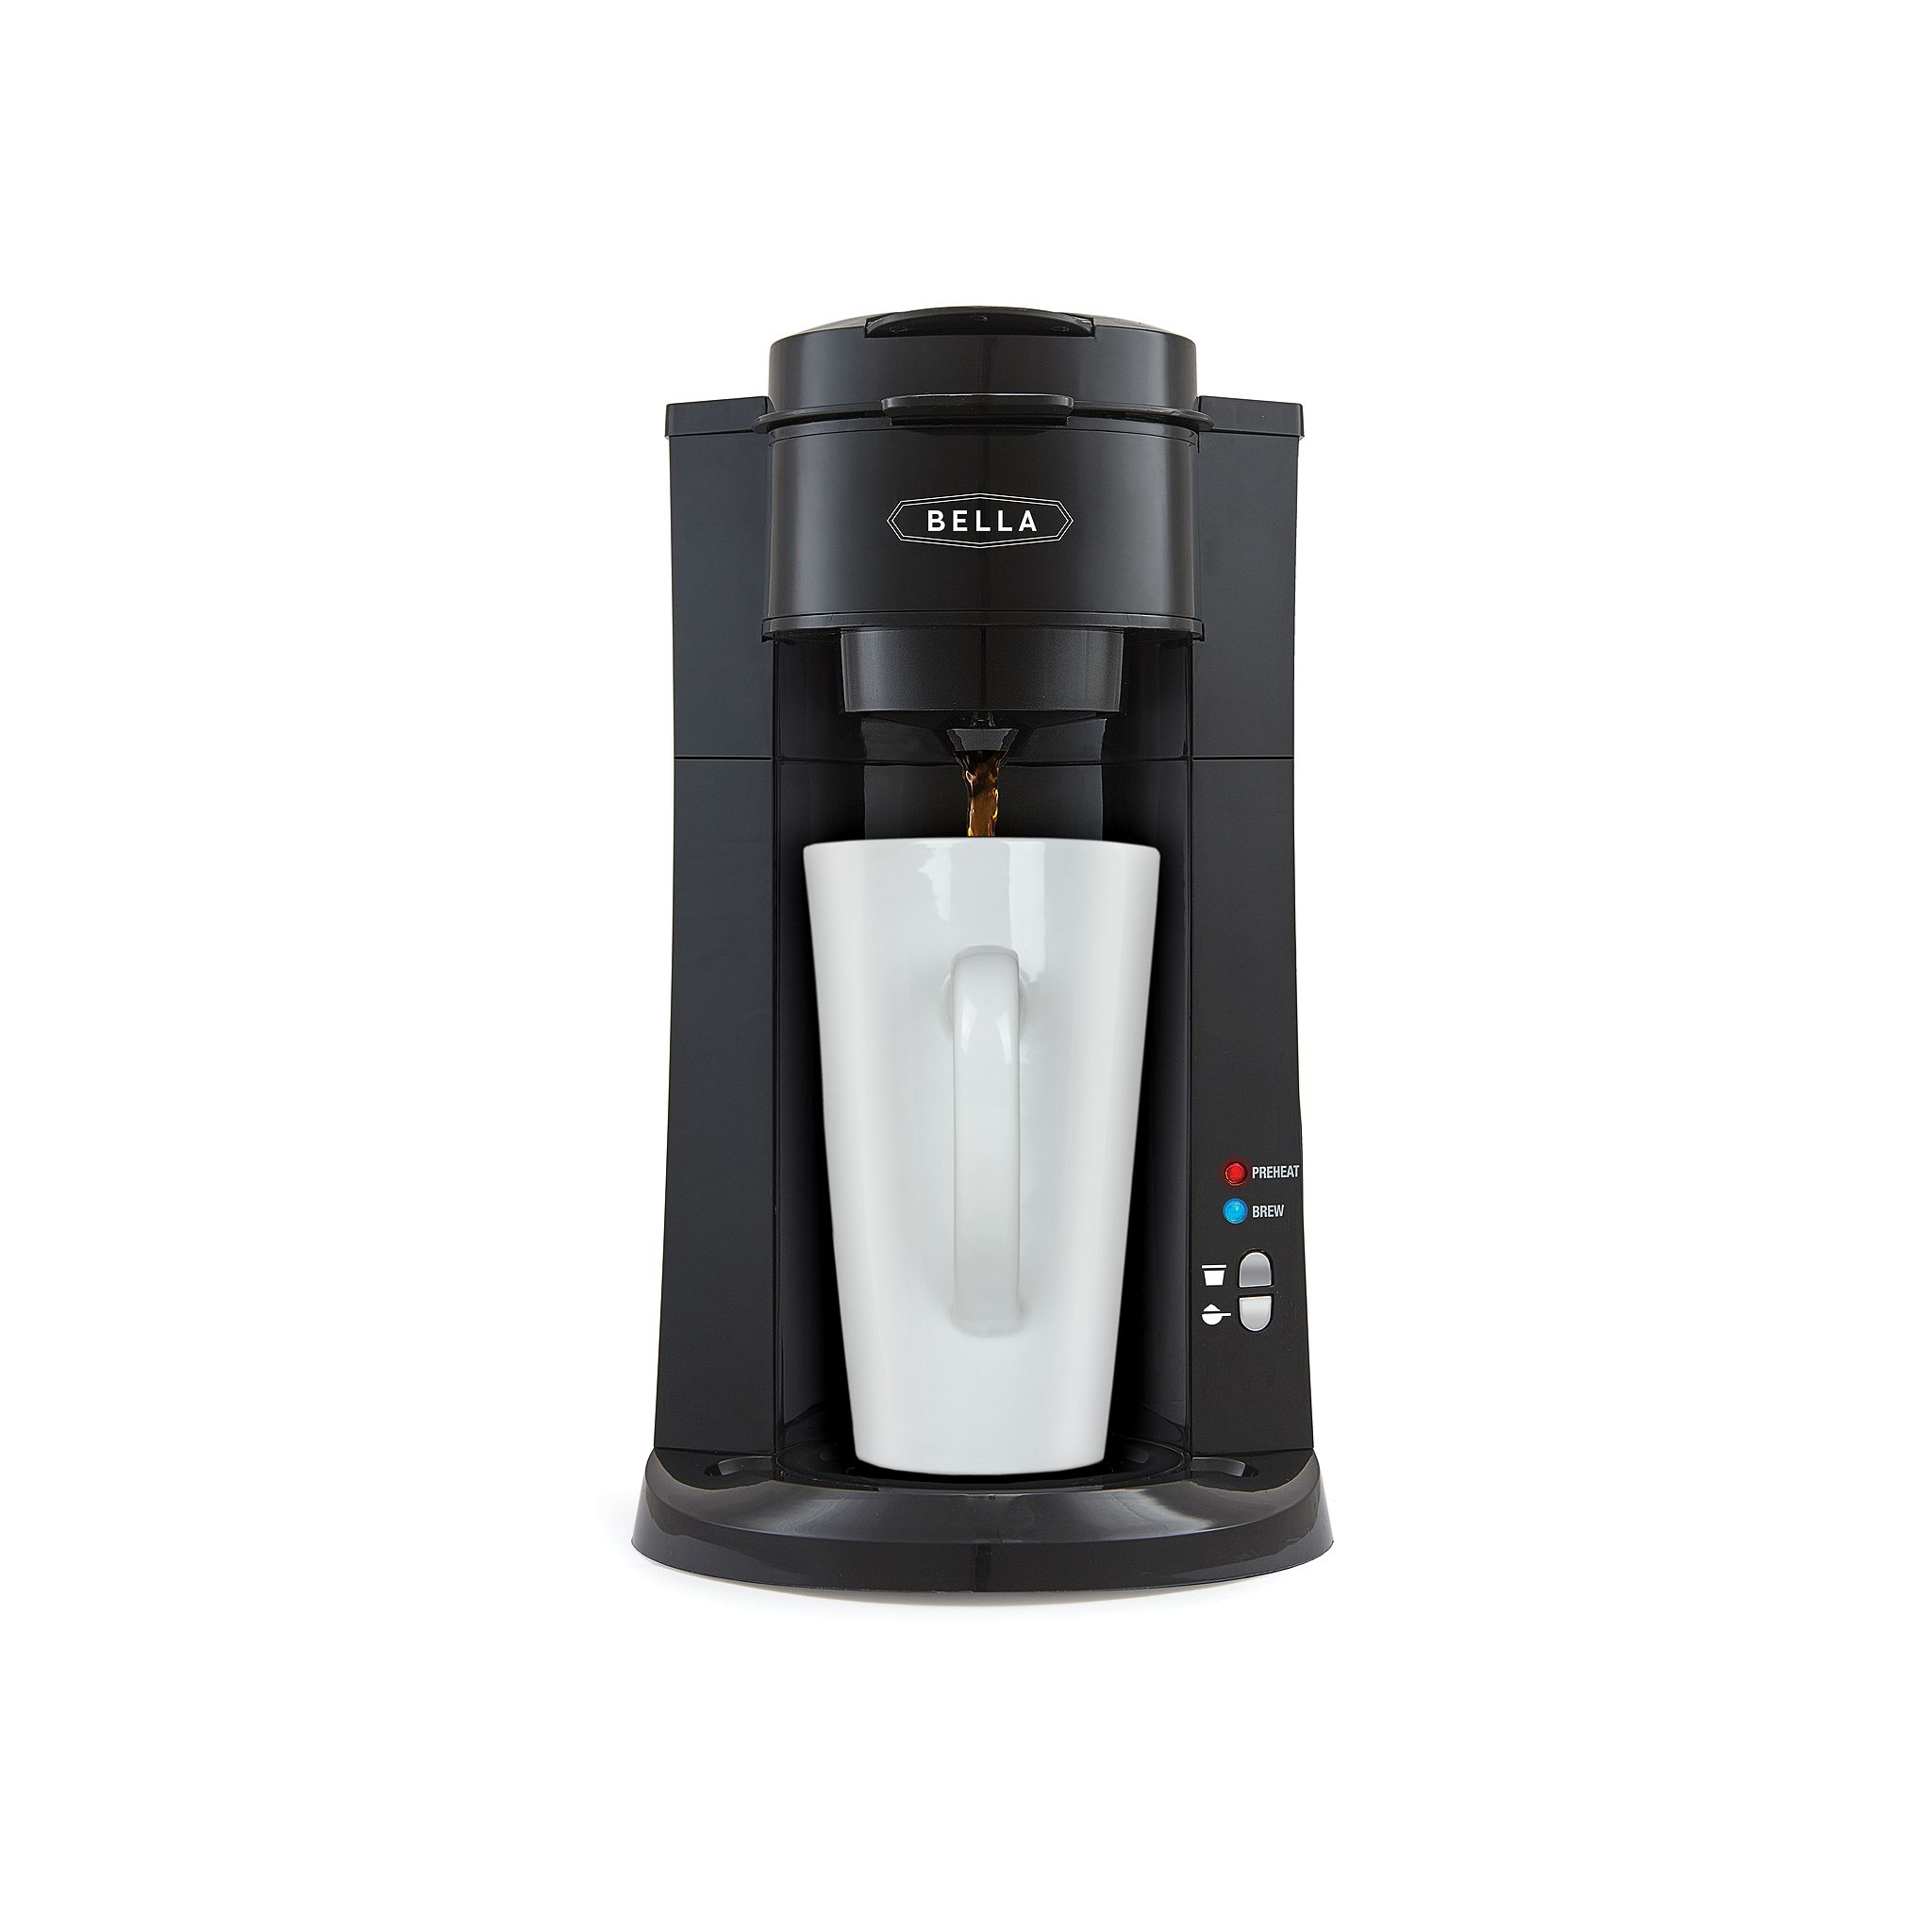 Bella Dual Brew Single-Serve Coffee Maker, Black